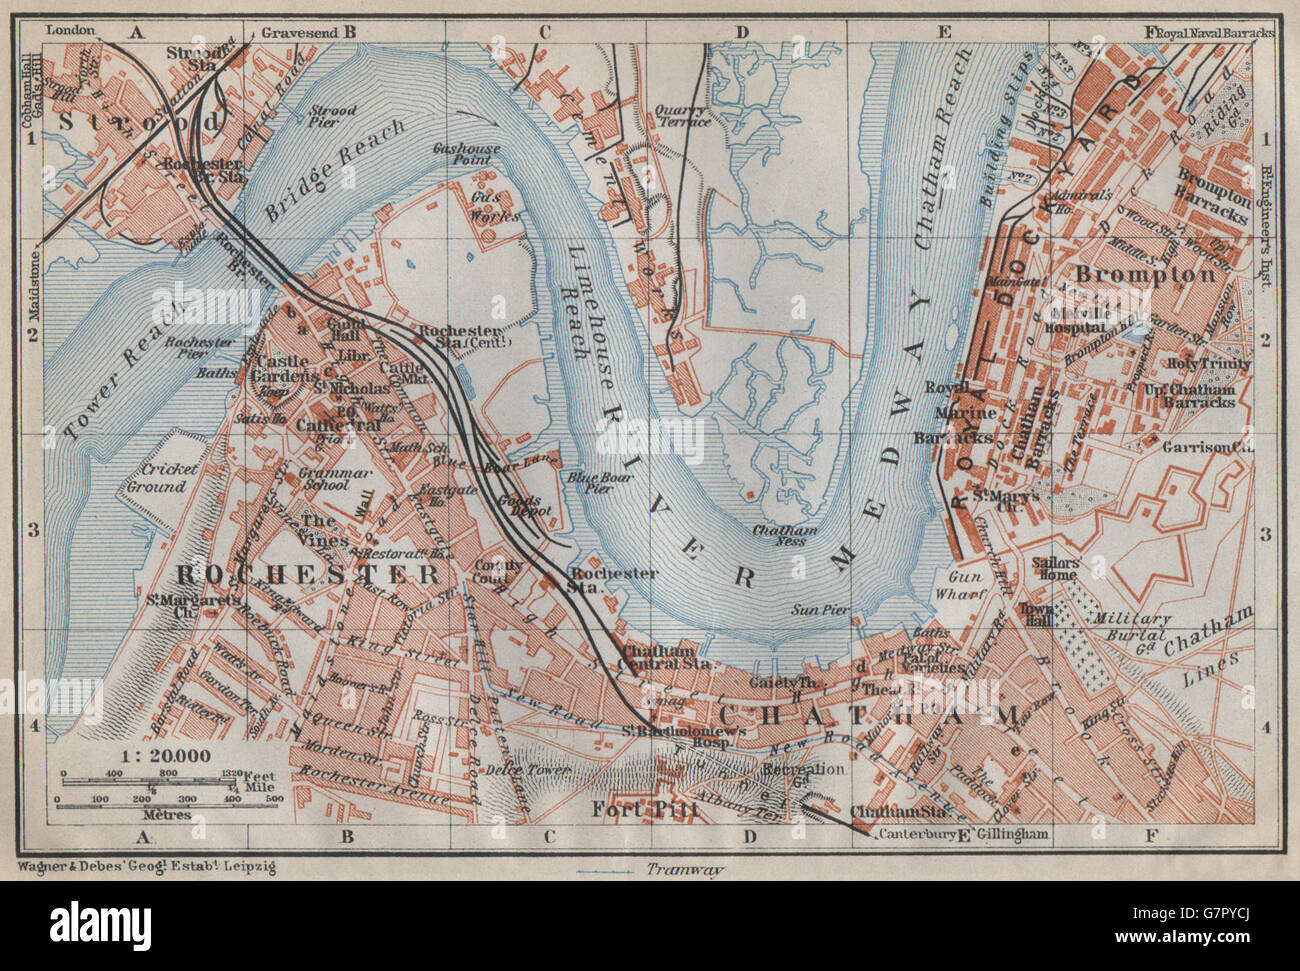 Chatham England Map.Strood Stock Photos Strood Stock Images Alamy